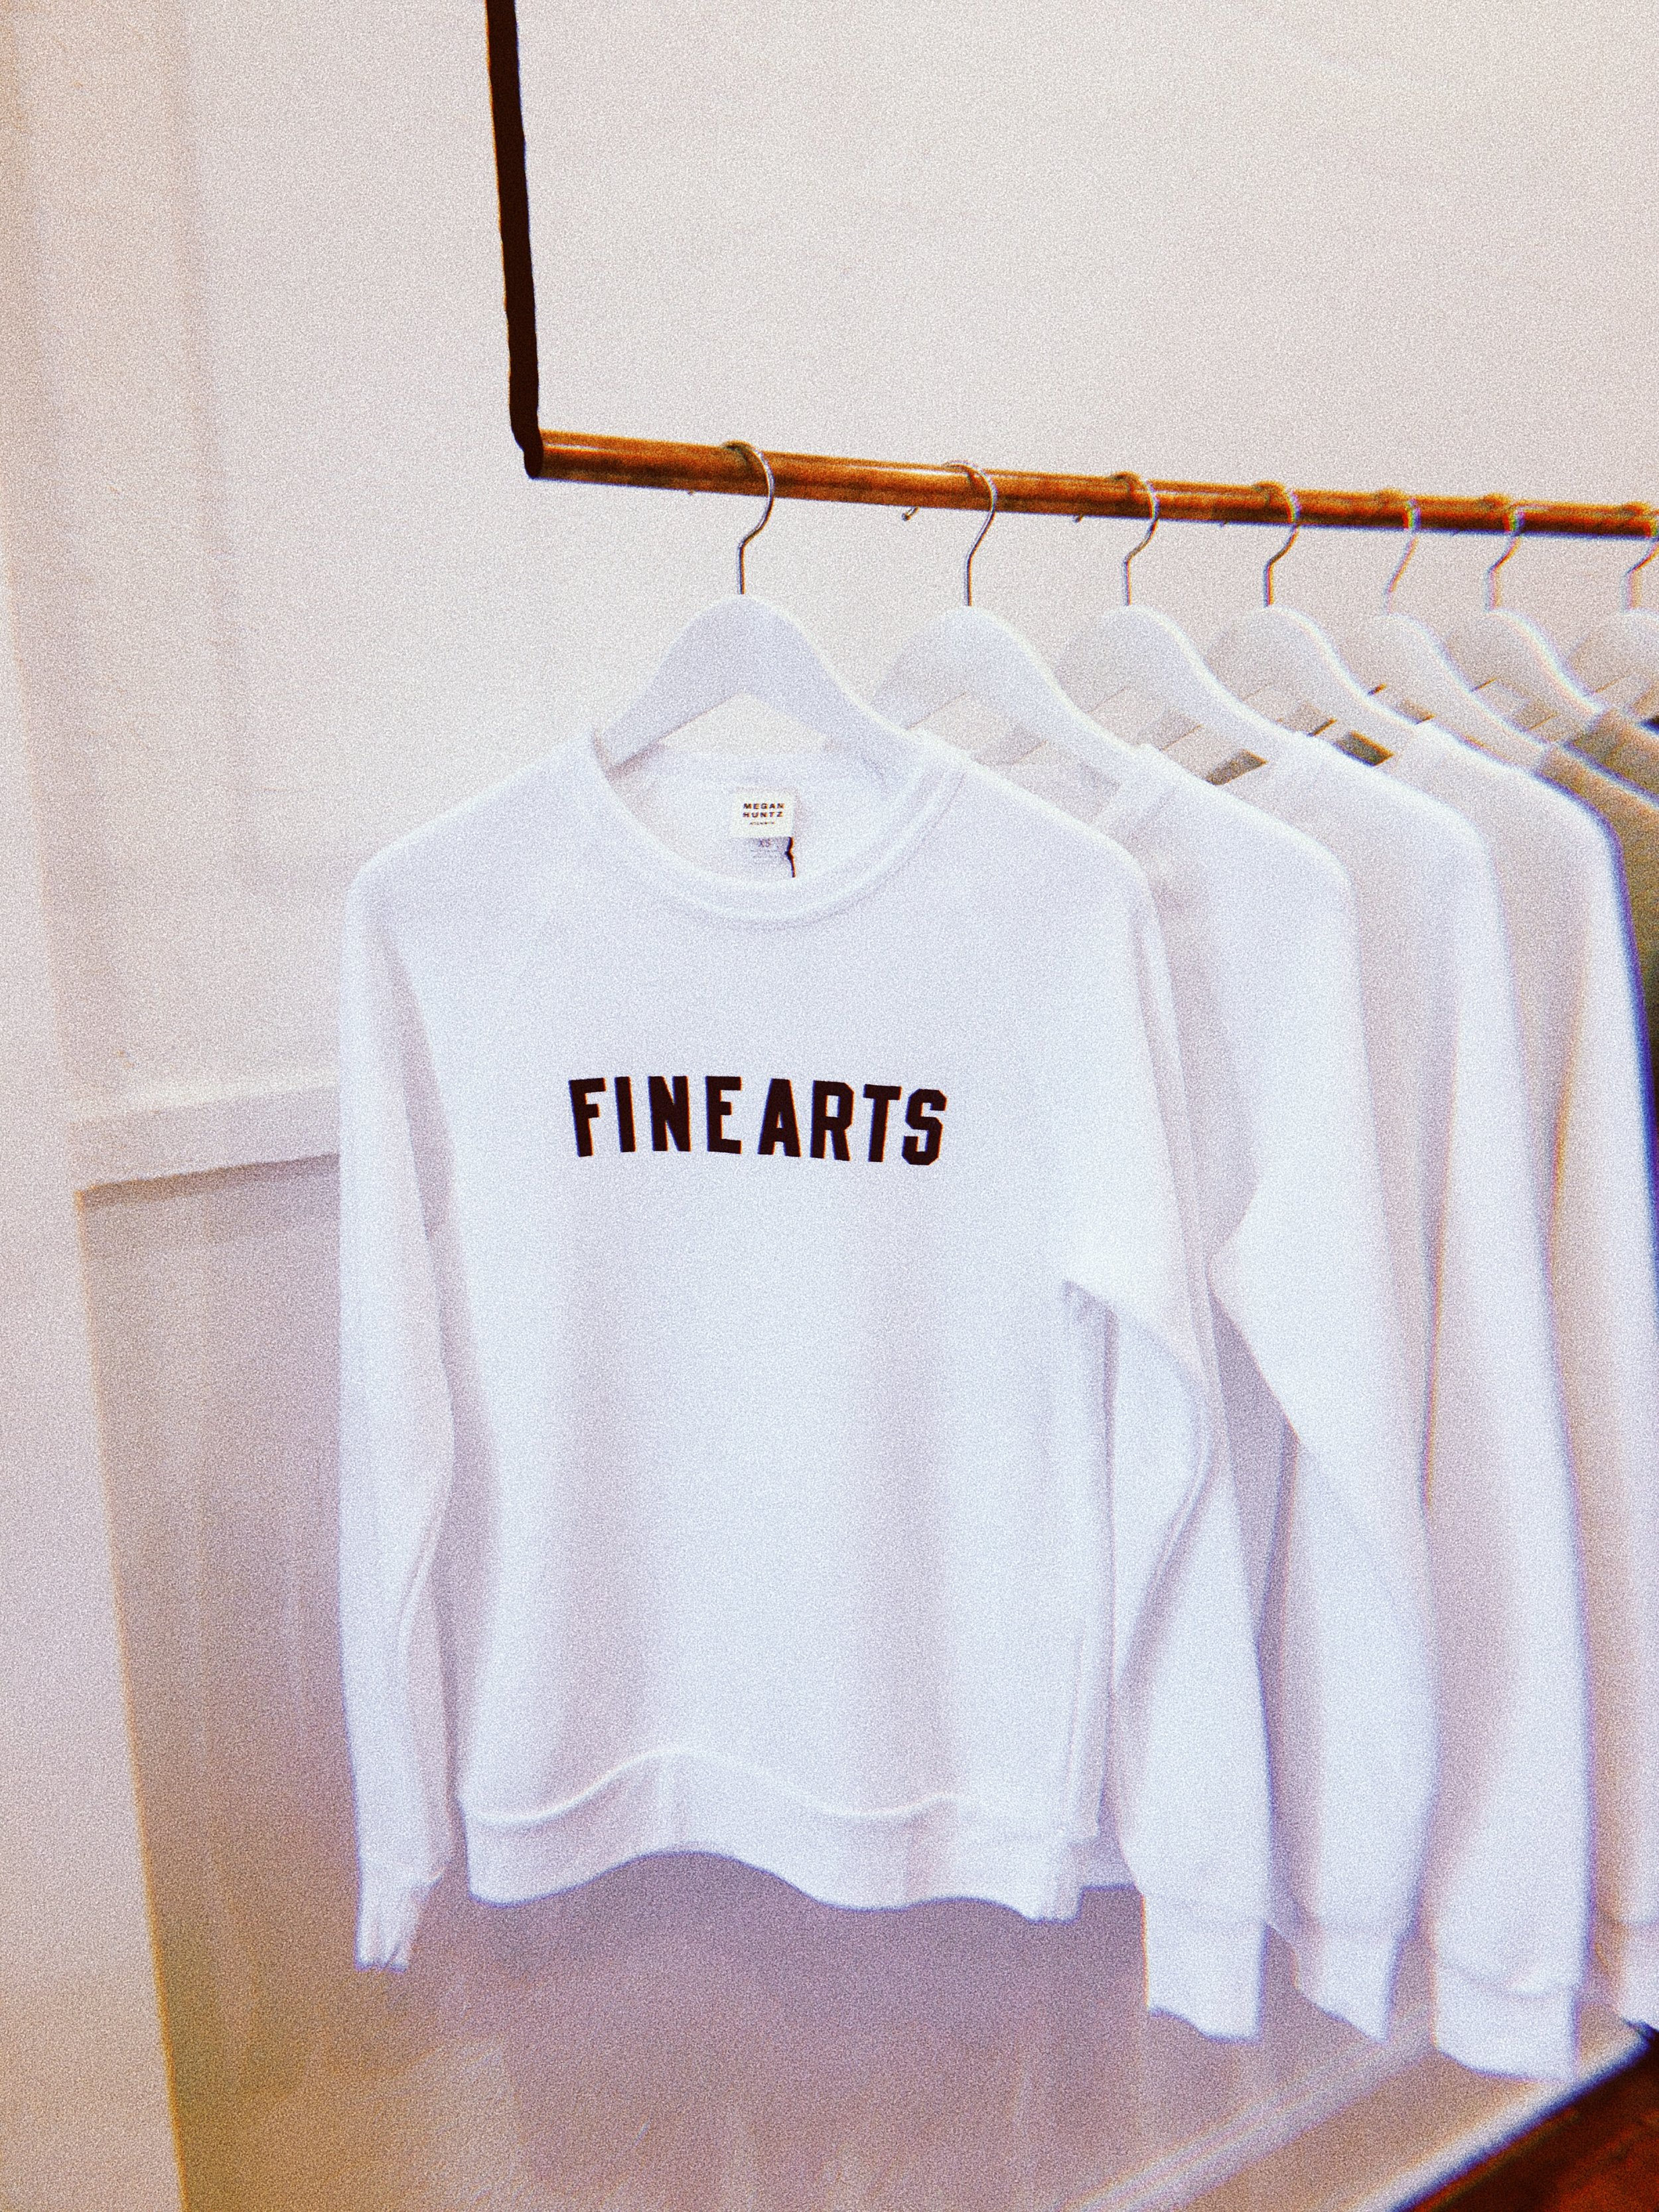 Megan Huntz Fine Arts Sweater.JPG